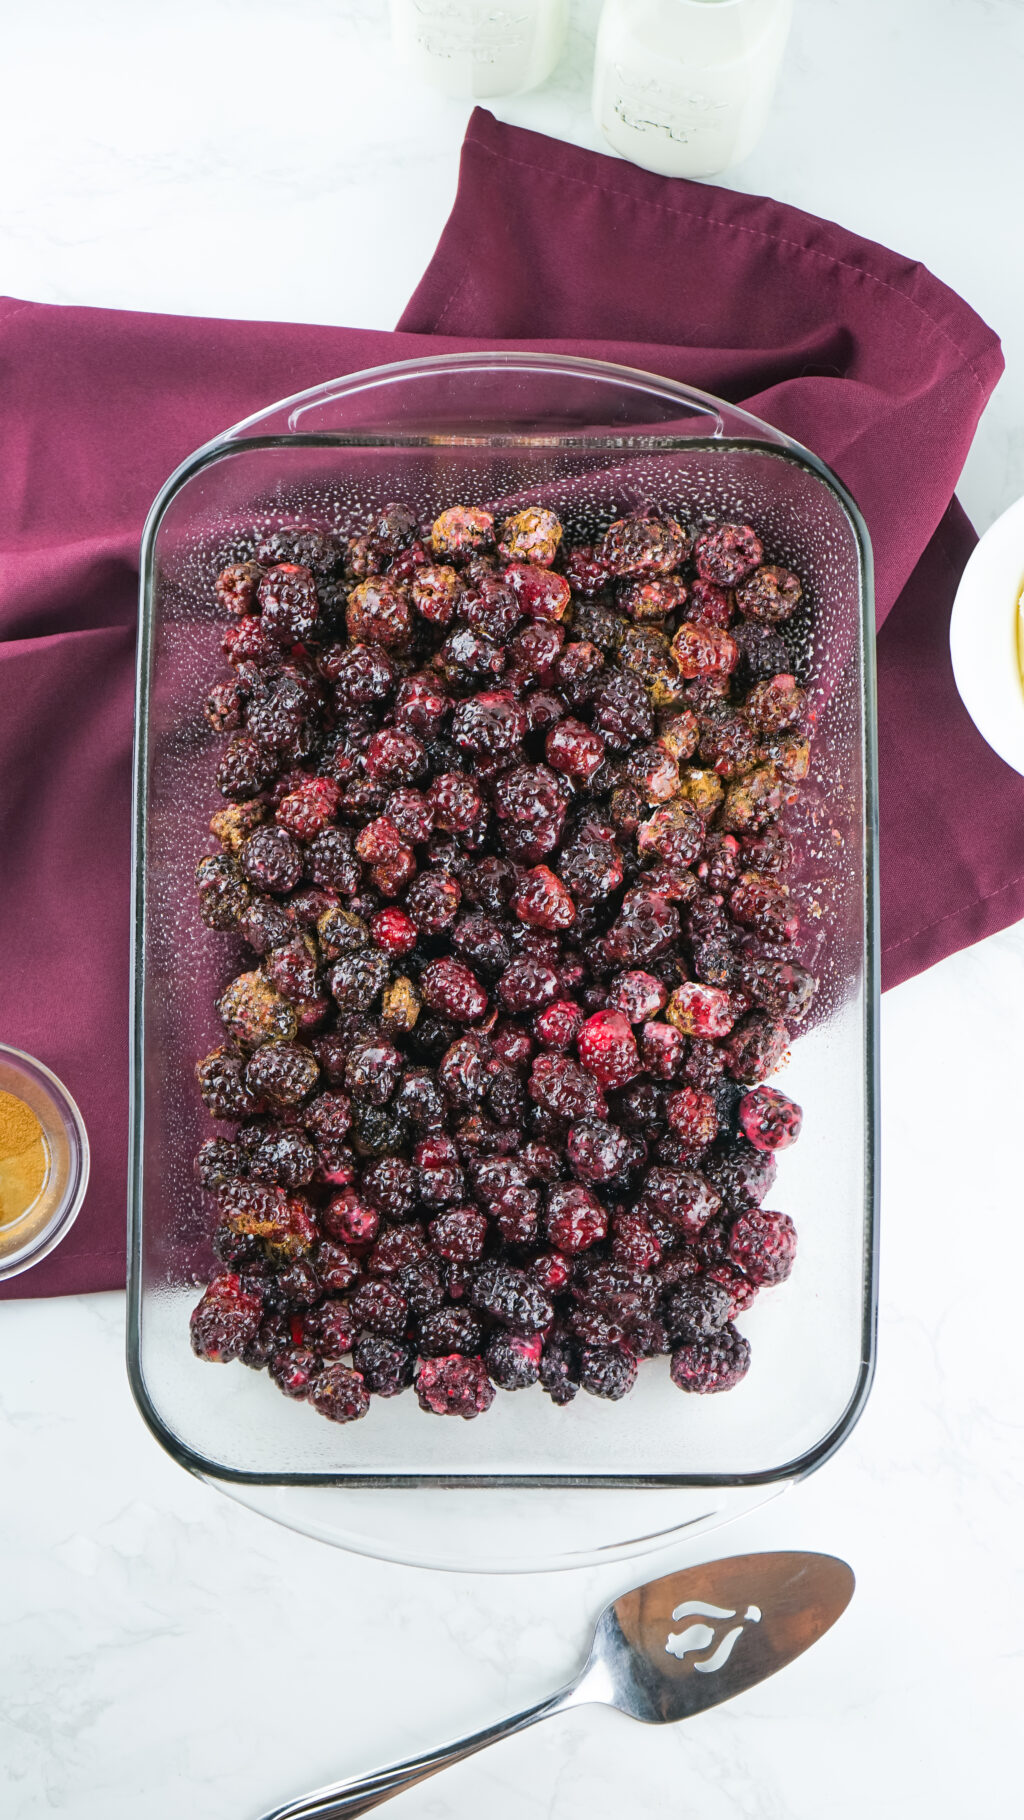 sugar coated blackberries spread out in a baking dish